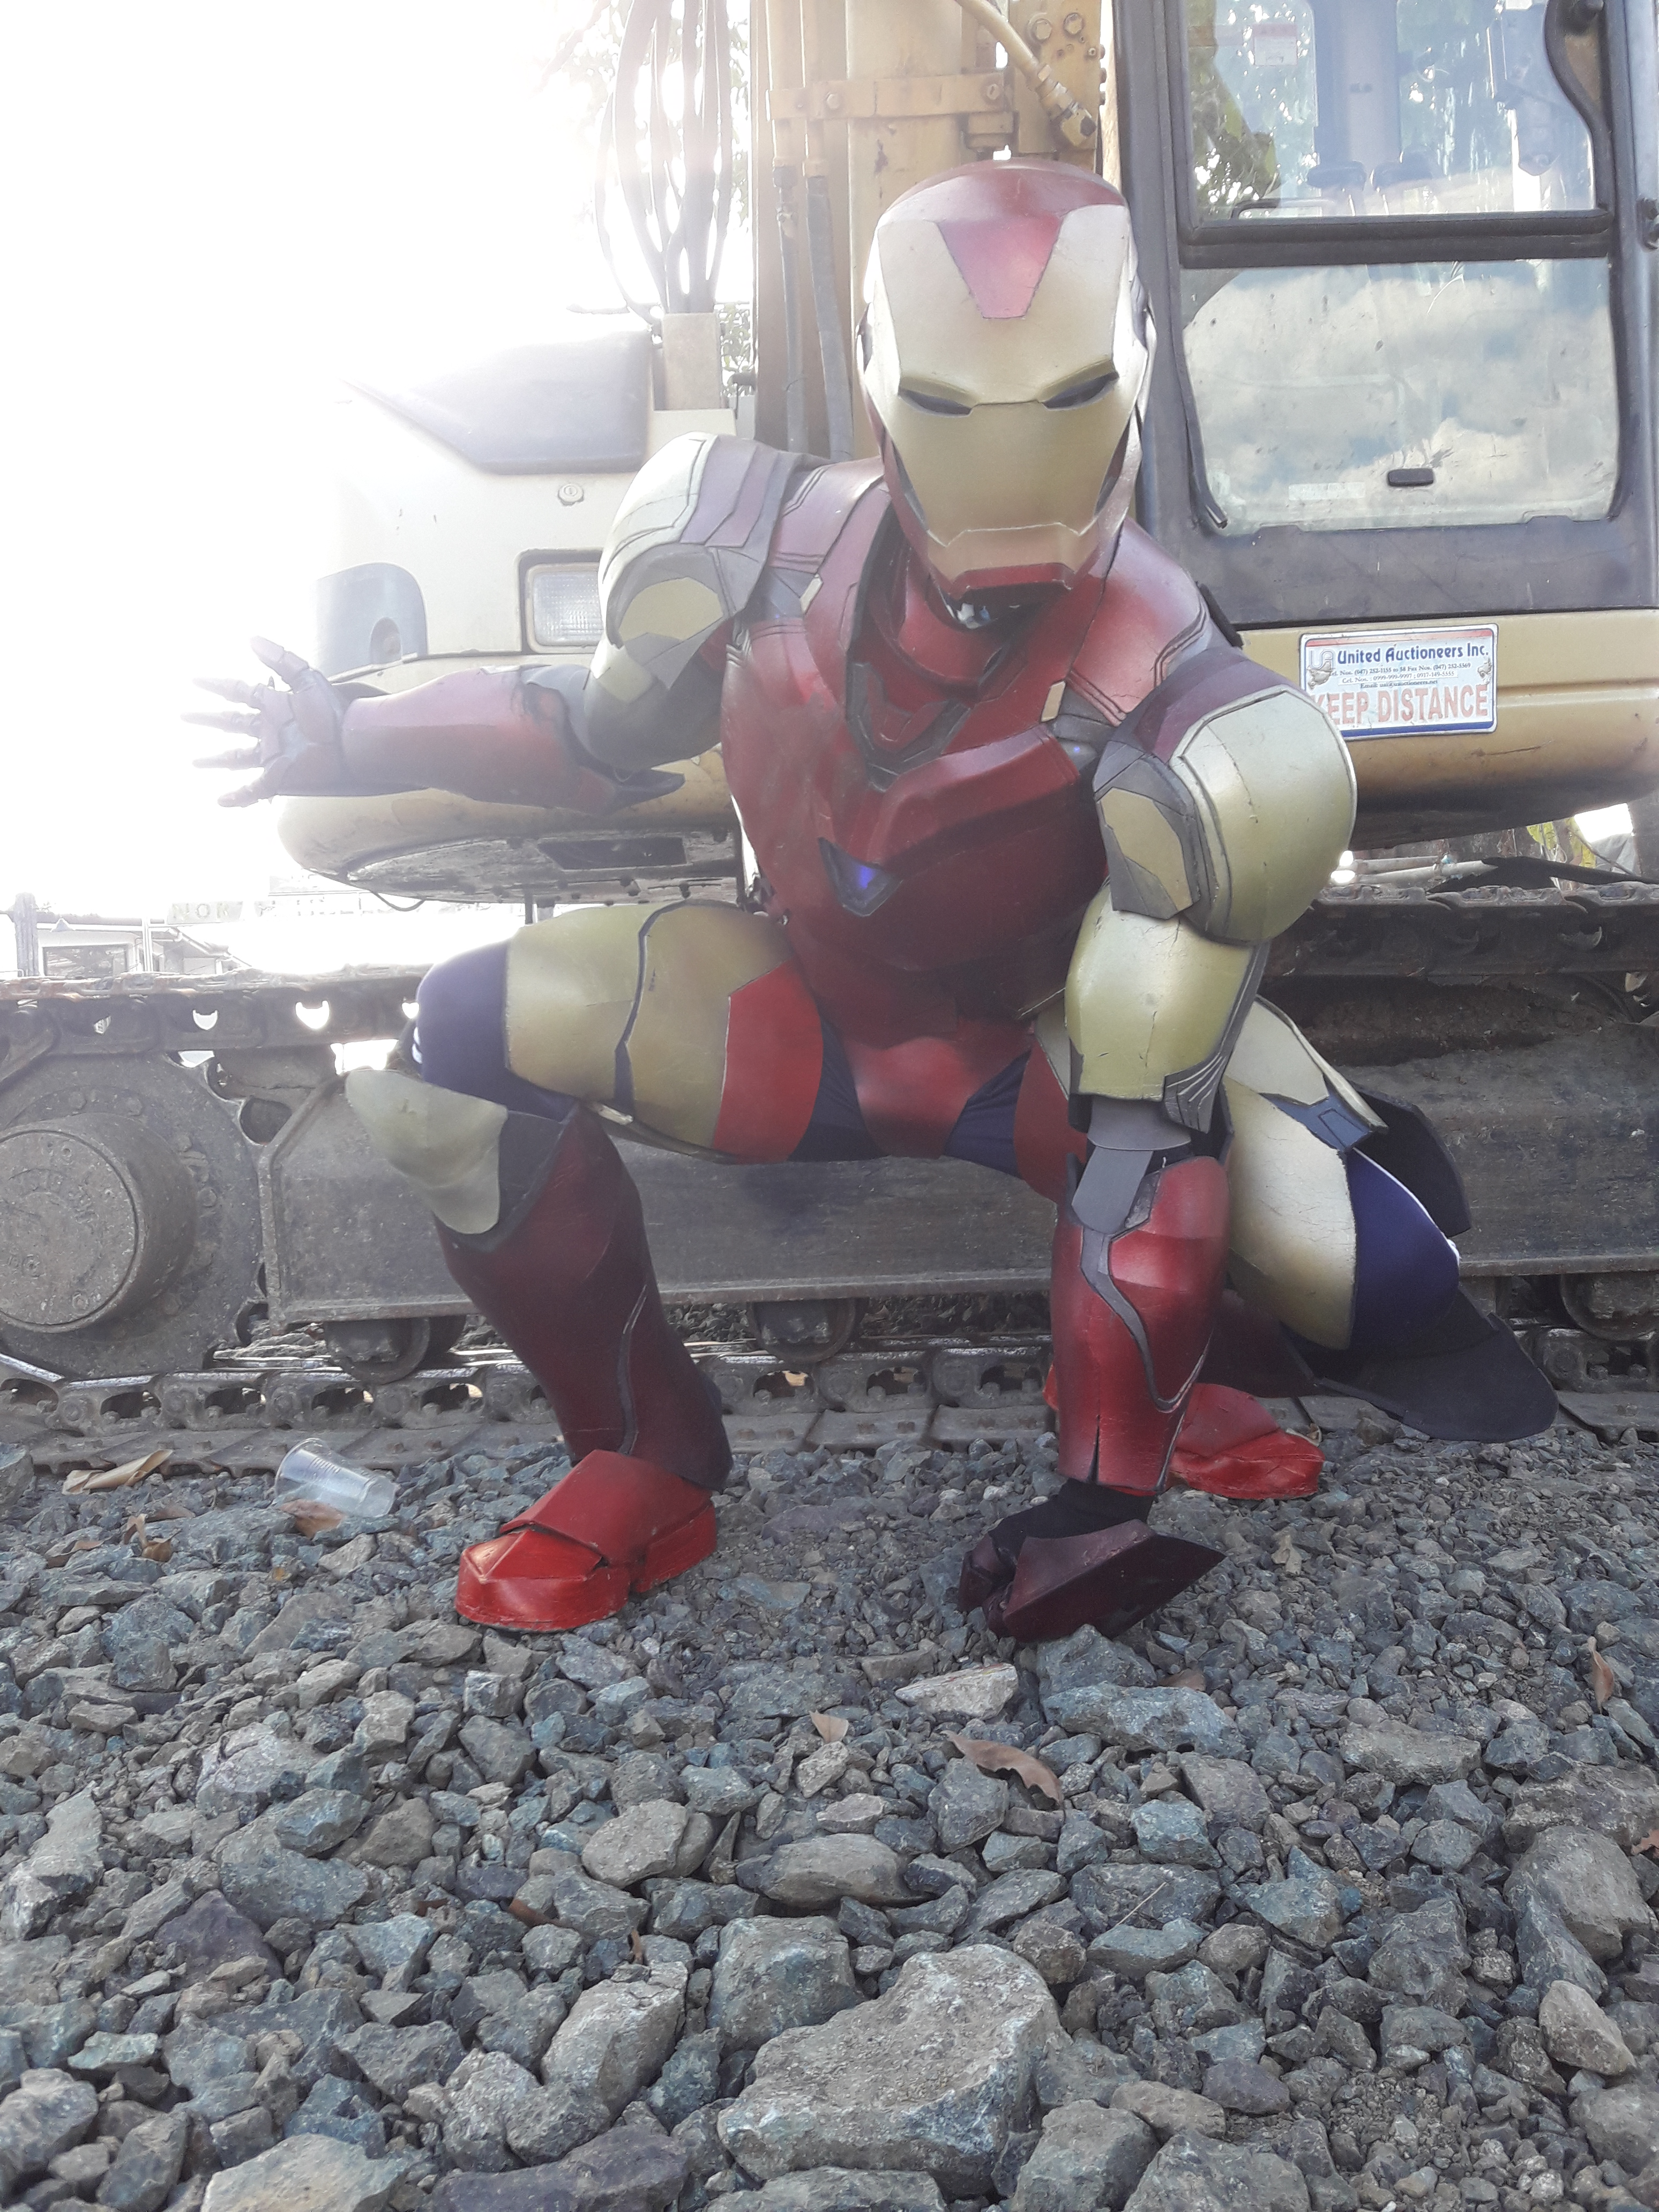 Man in red and yellow Iron Man armor, crouching